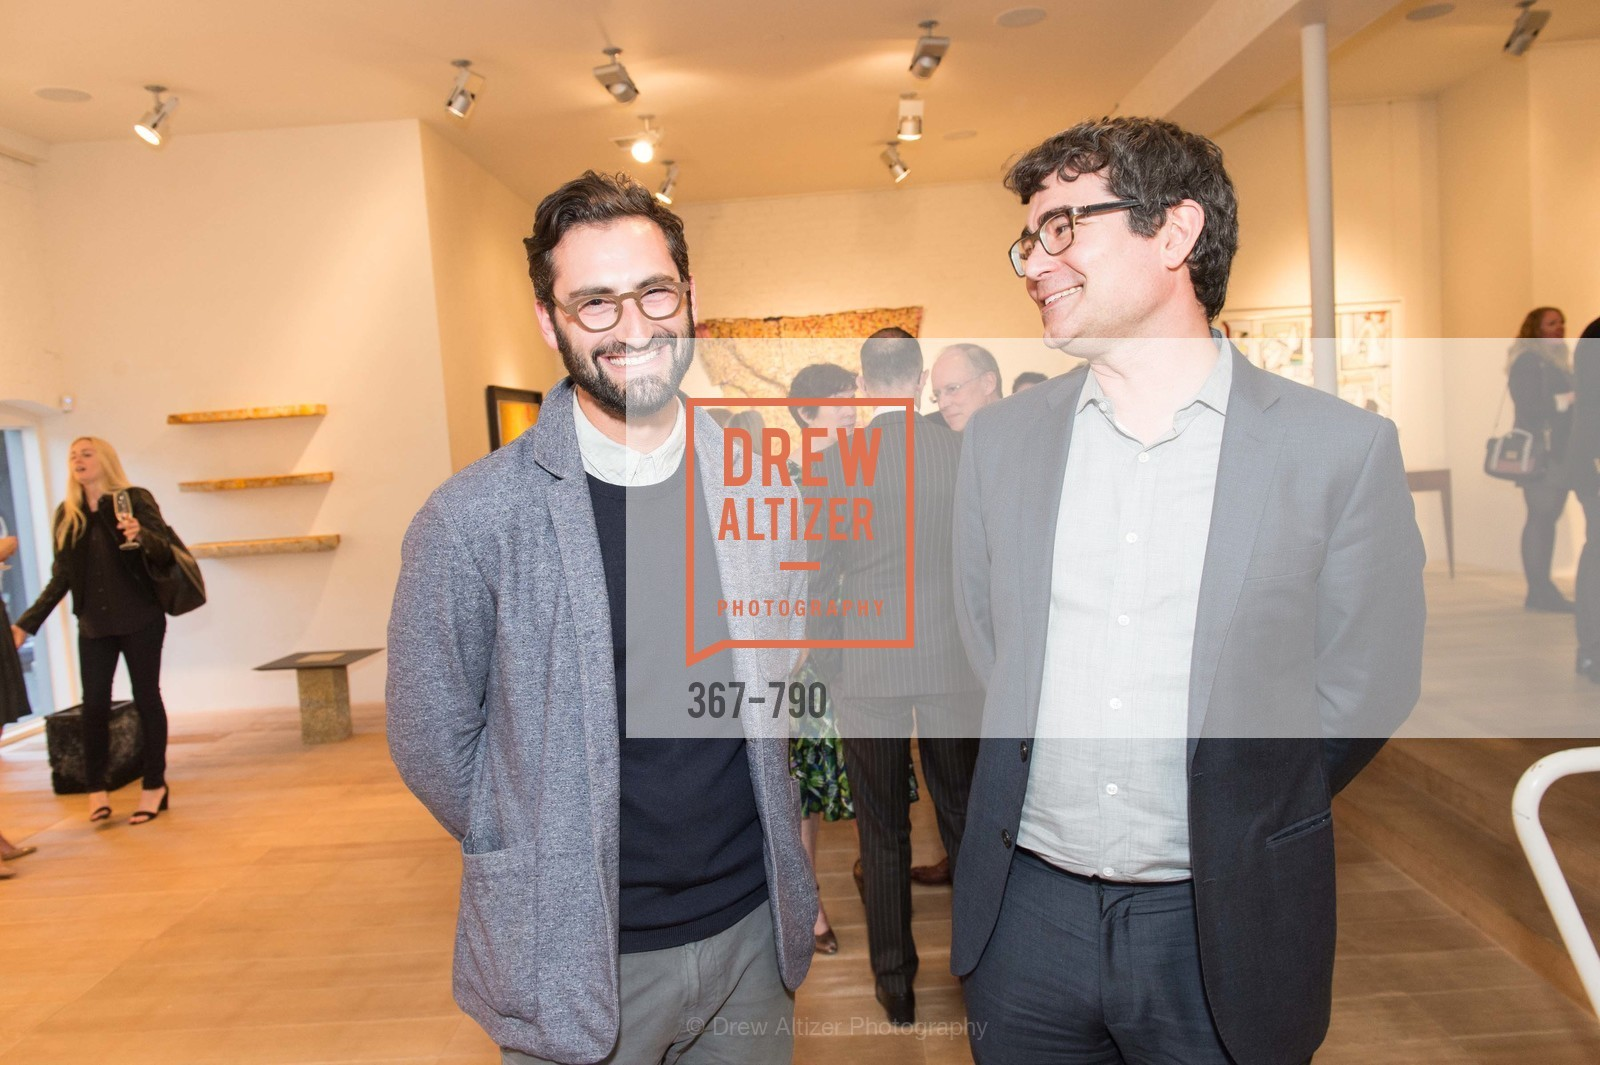 Joseph Becker, Alec Hathaway, Post War and Contemporary Preview at HEDGE GALLERY, US, April 16th, 2015,Drew Altizer, Drew Altizer Photography, full-service agency, private events, San Francisco photographer, photographer california